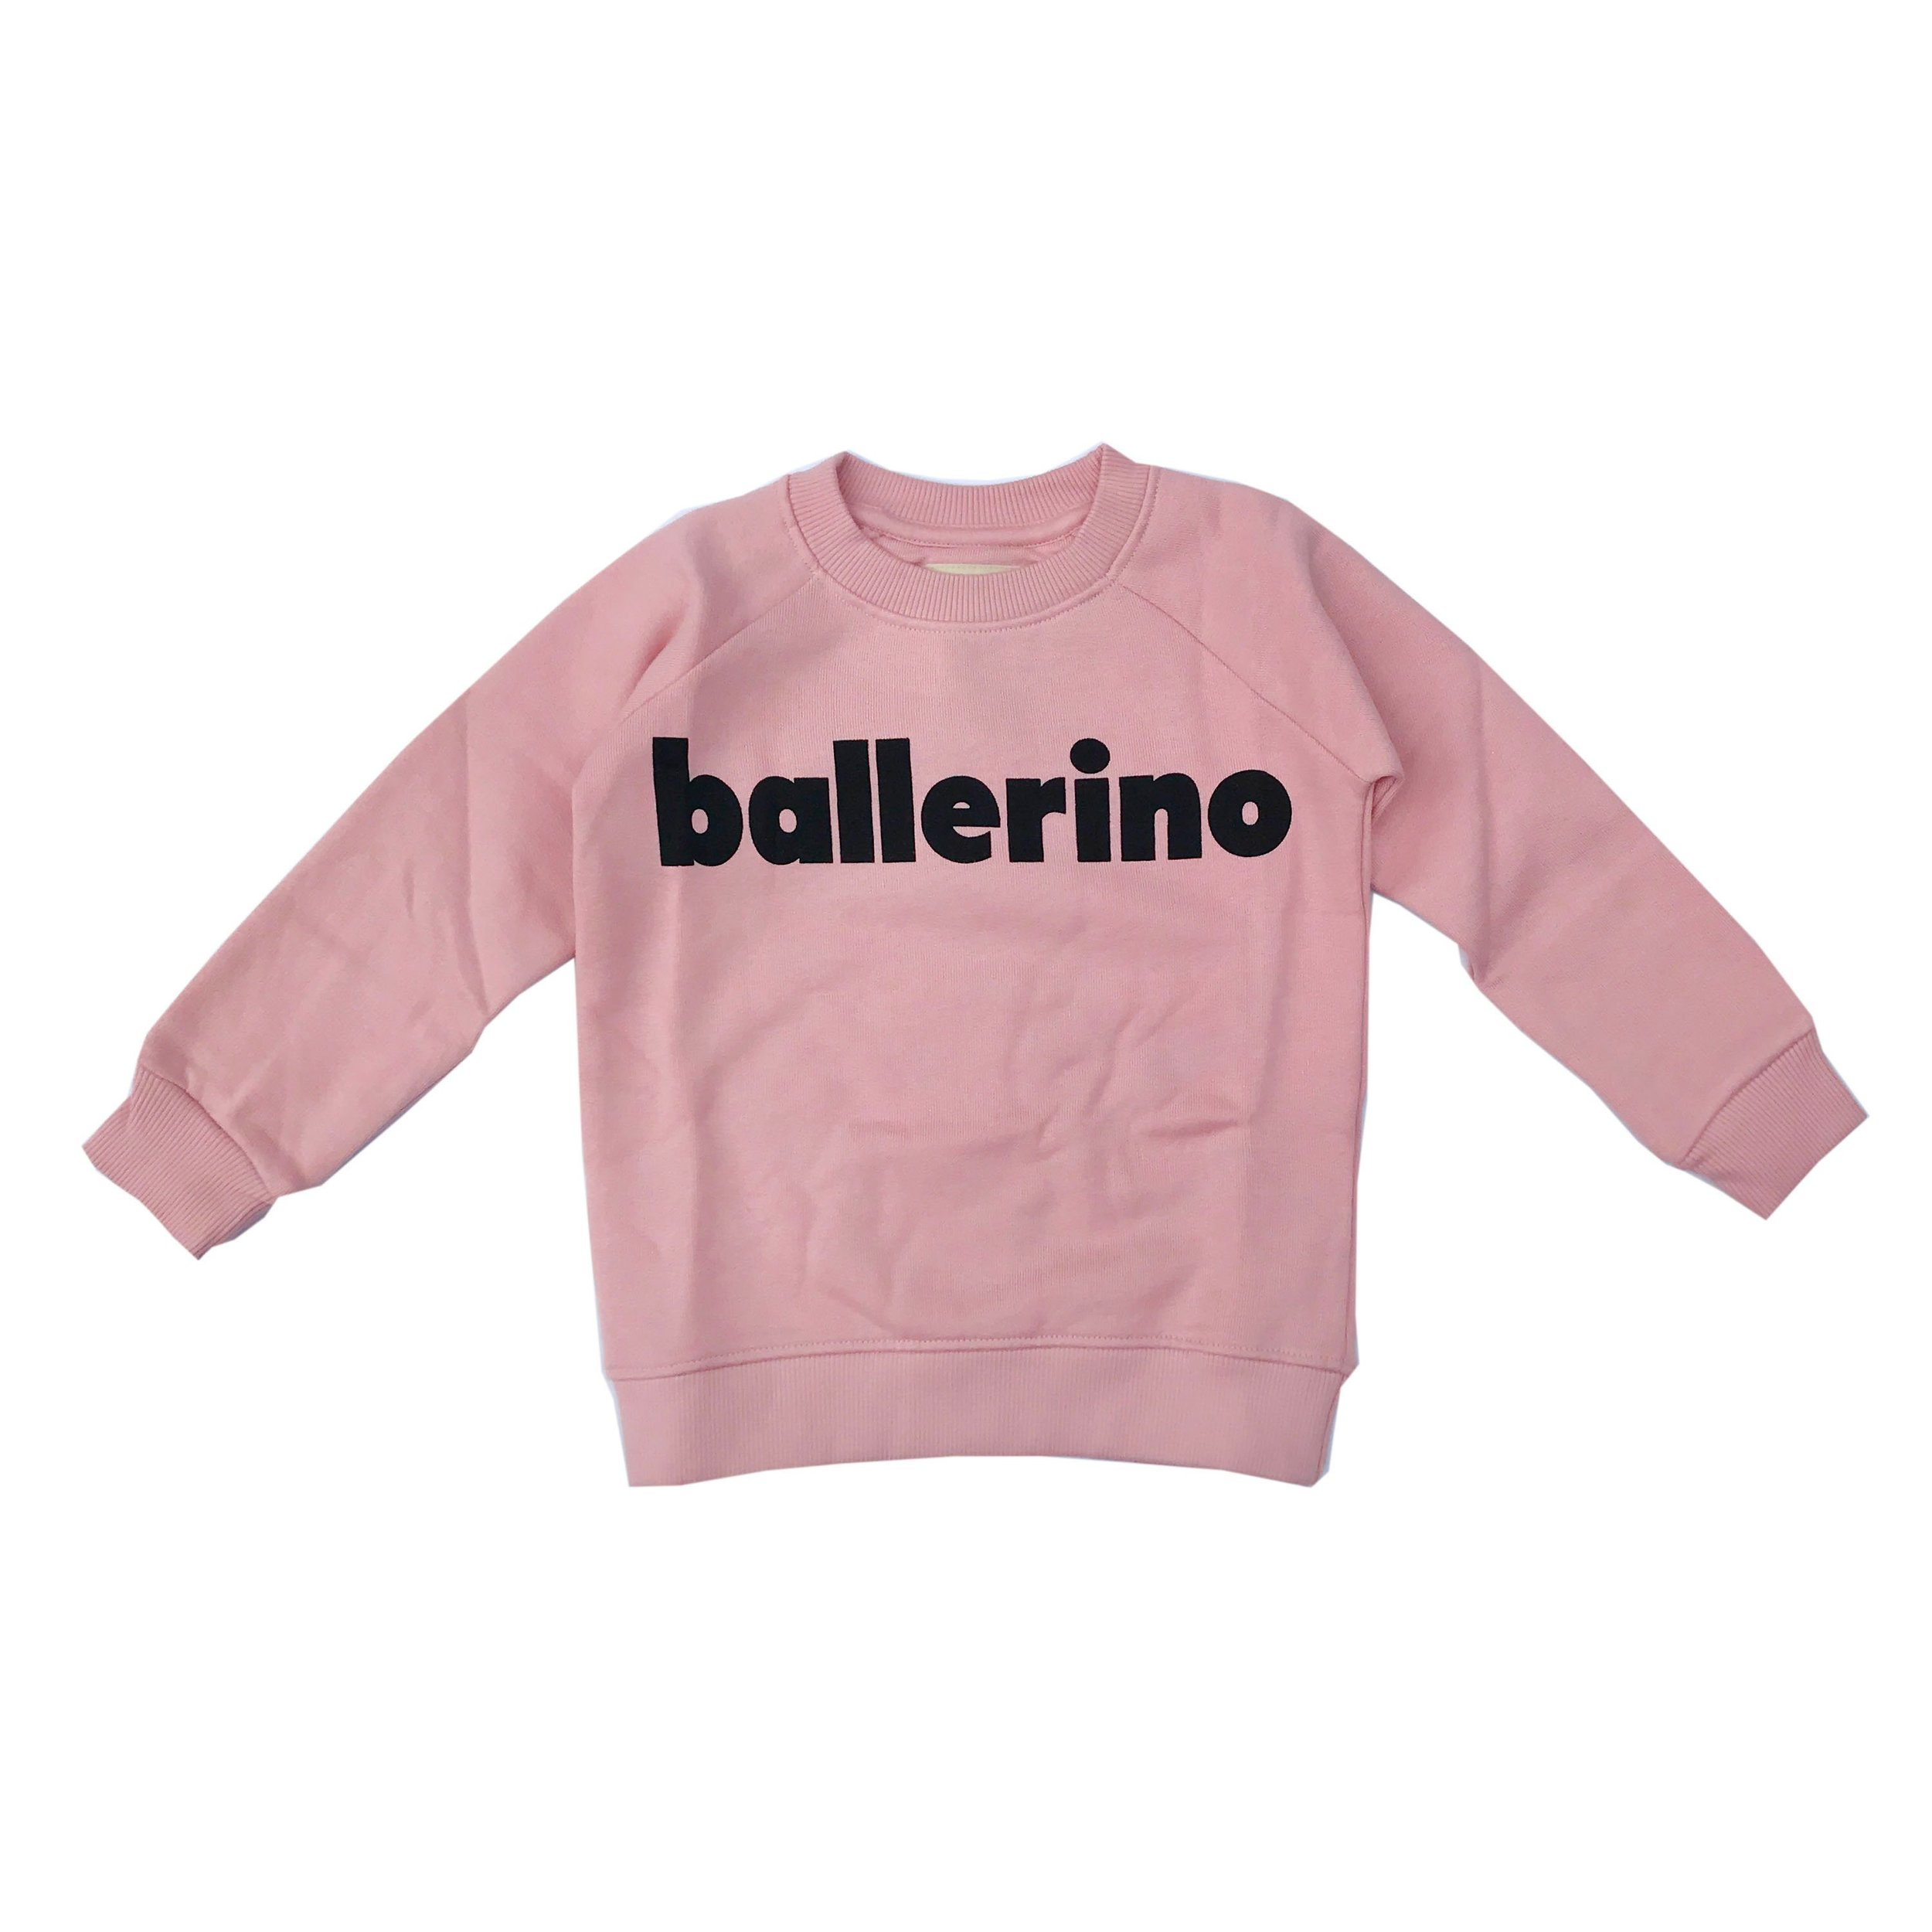 Ballerino Sweater - Ever wondered what a male ballet dancer was called? Well now, you know. Thanks Hugo Loves Tiki for this reminder that ballet is for anyone who wants to do it.Hugo Loves Tiki sweatshirt £37 Bon Tot